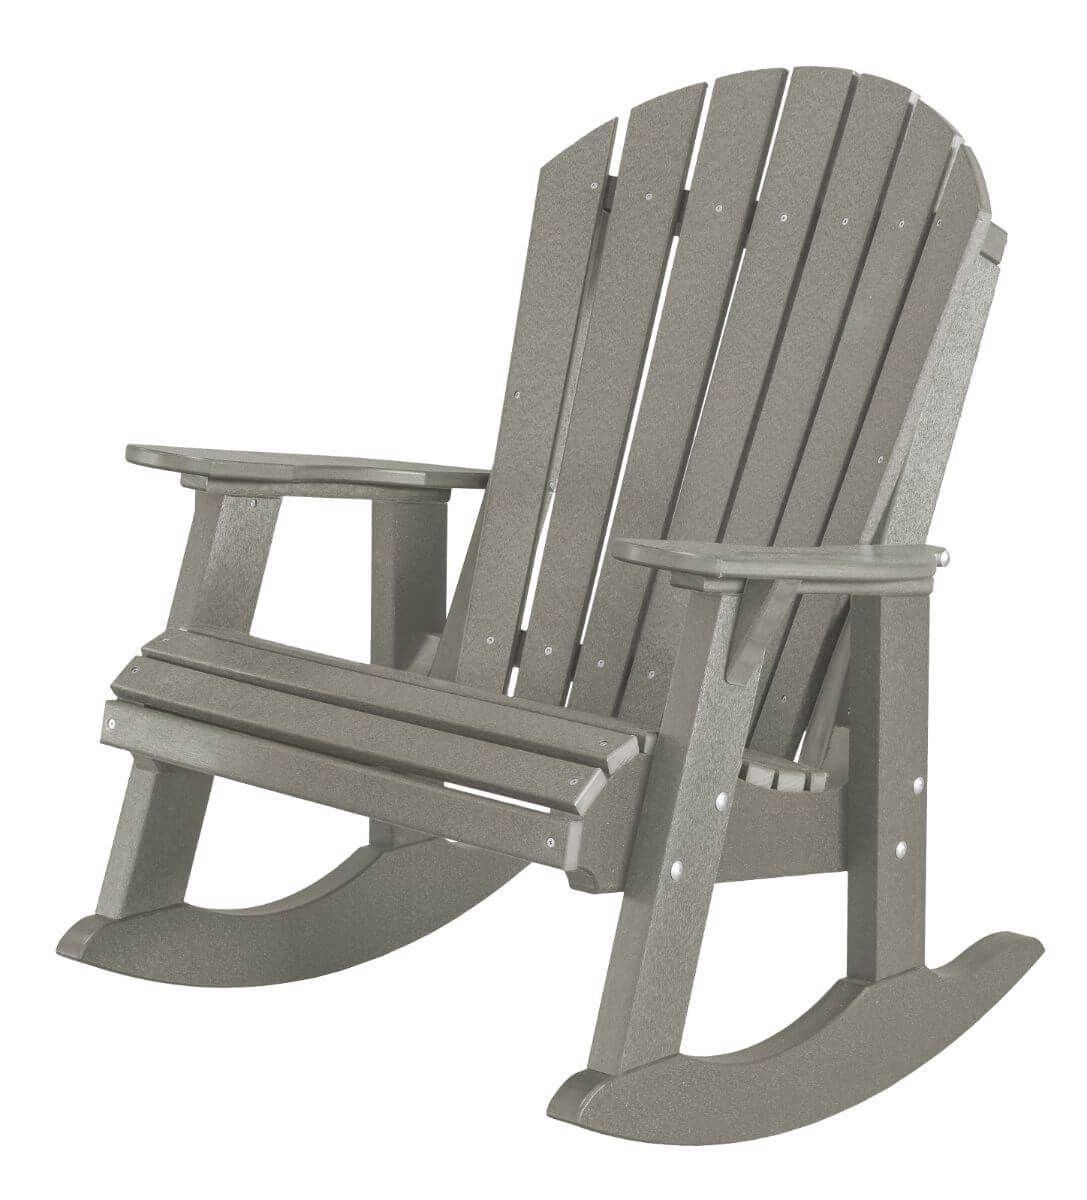 Light Gray Sidra Adirondack Rocker